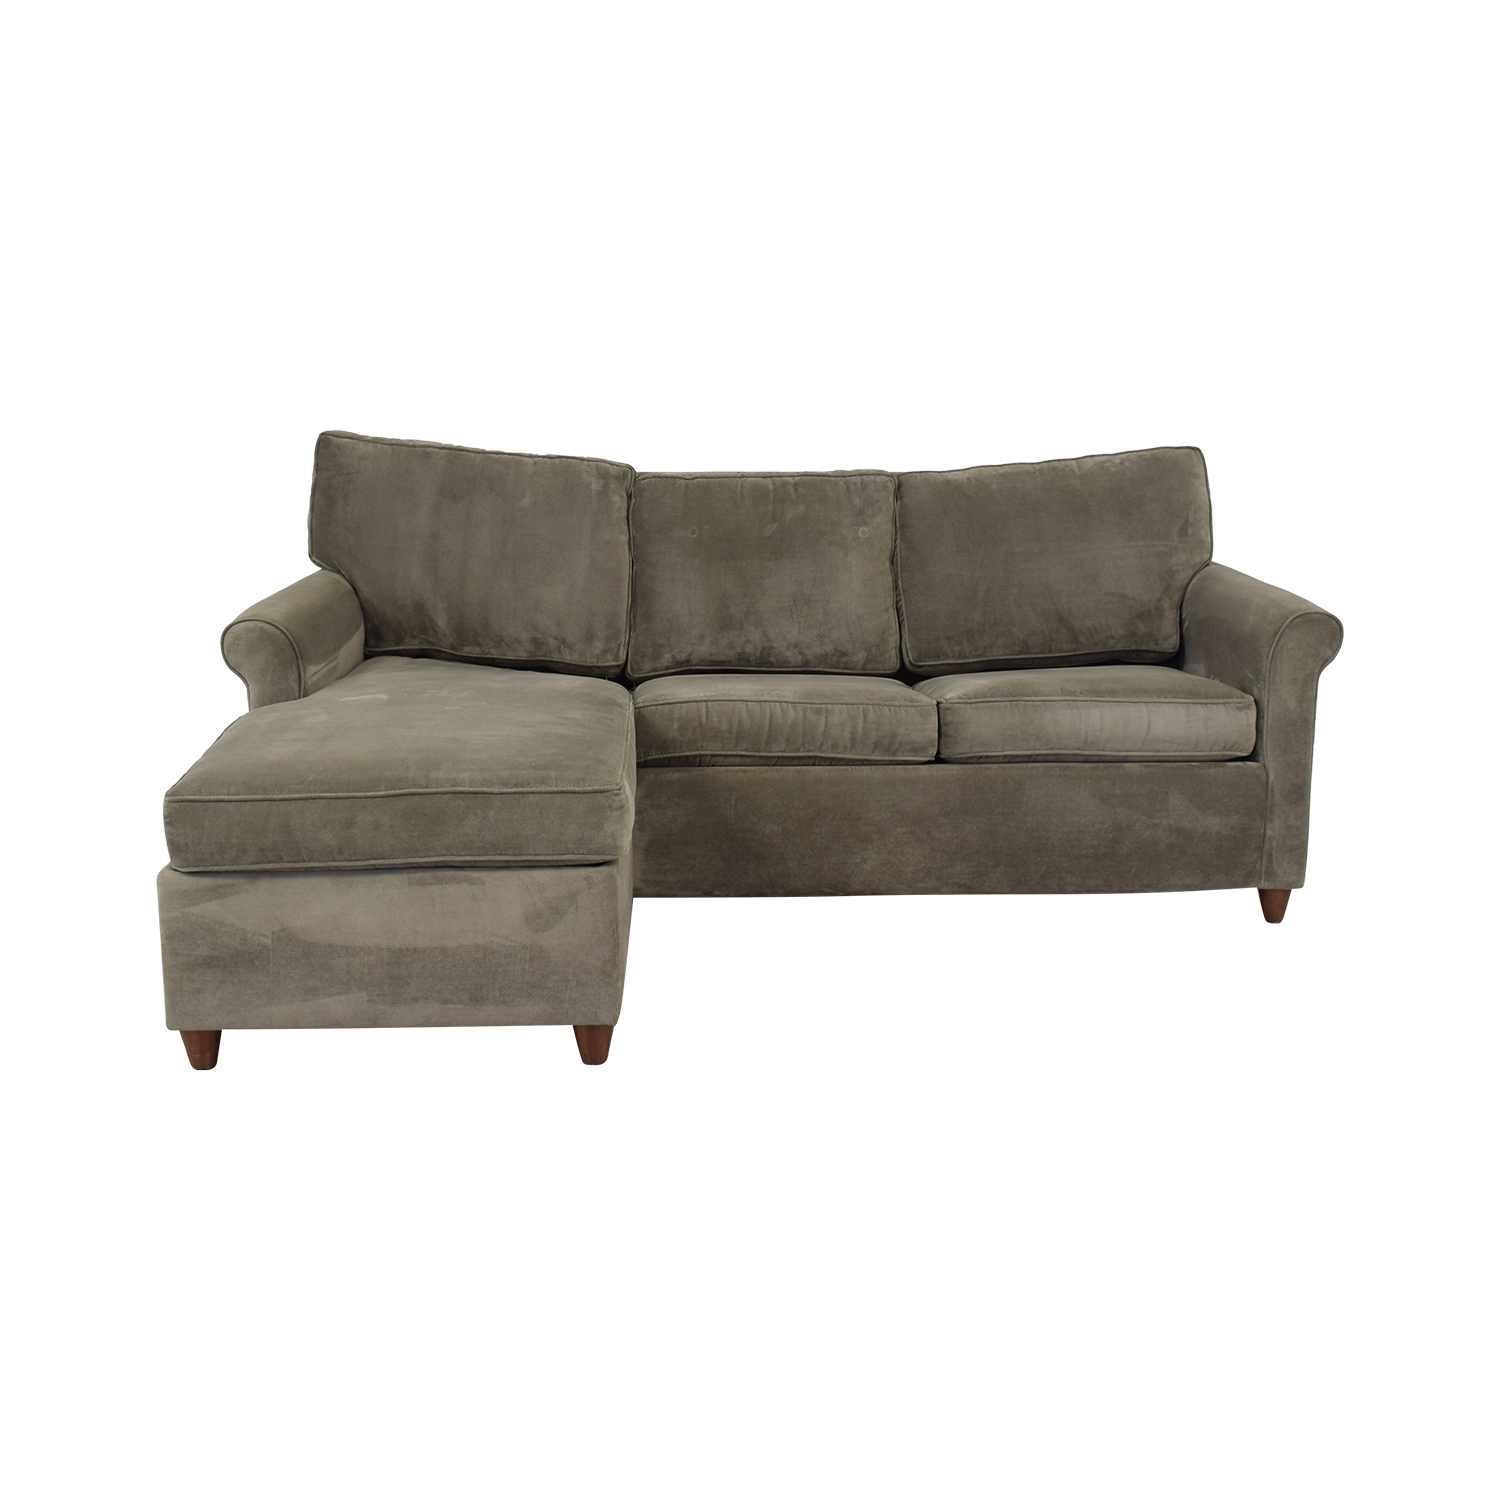 buy Macy's Lidia Chaise Sectional Queen Sleeper Sofa Macy's Sofas